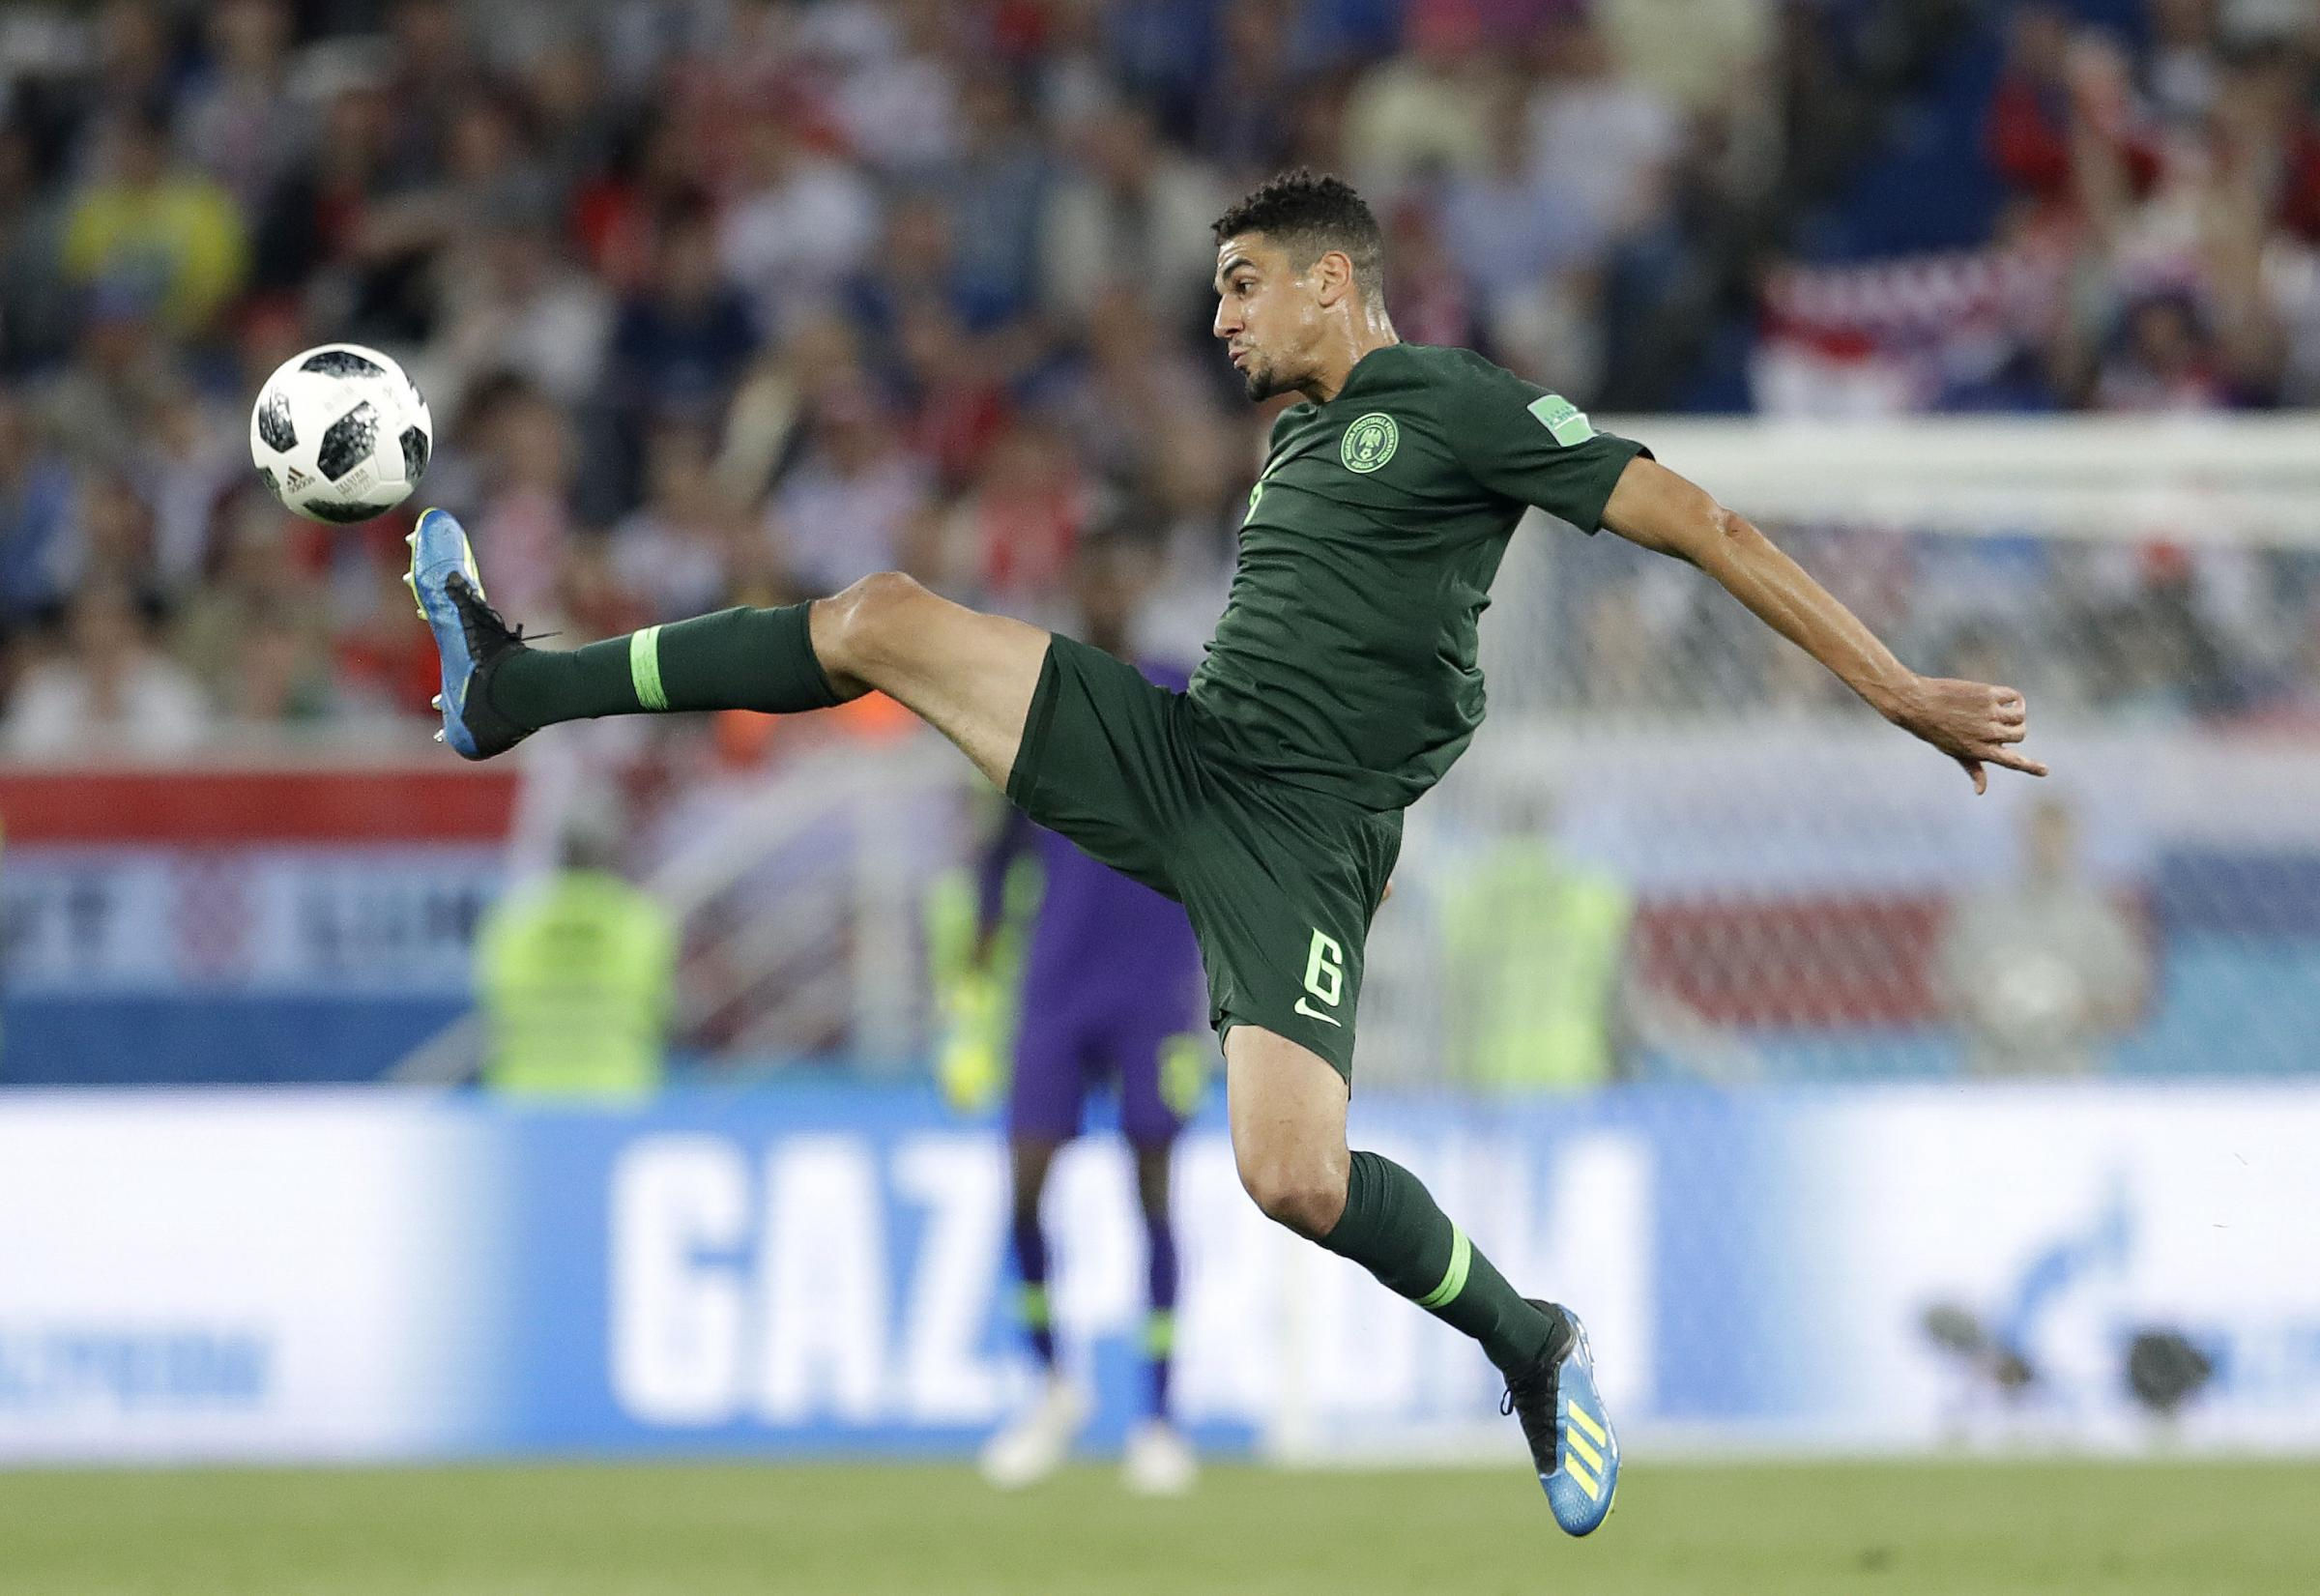 Albion defender denied a place in final of Africa Cup of Nations